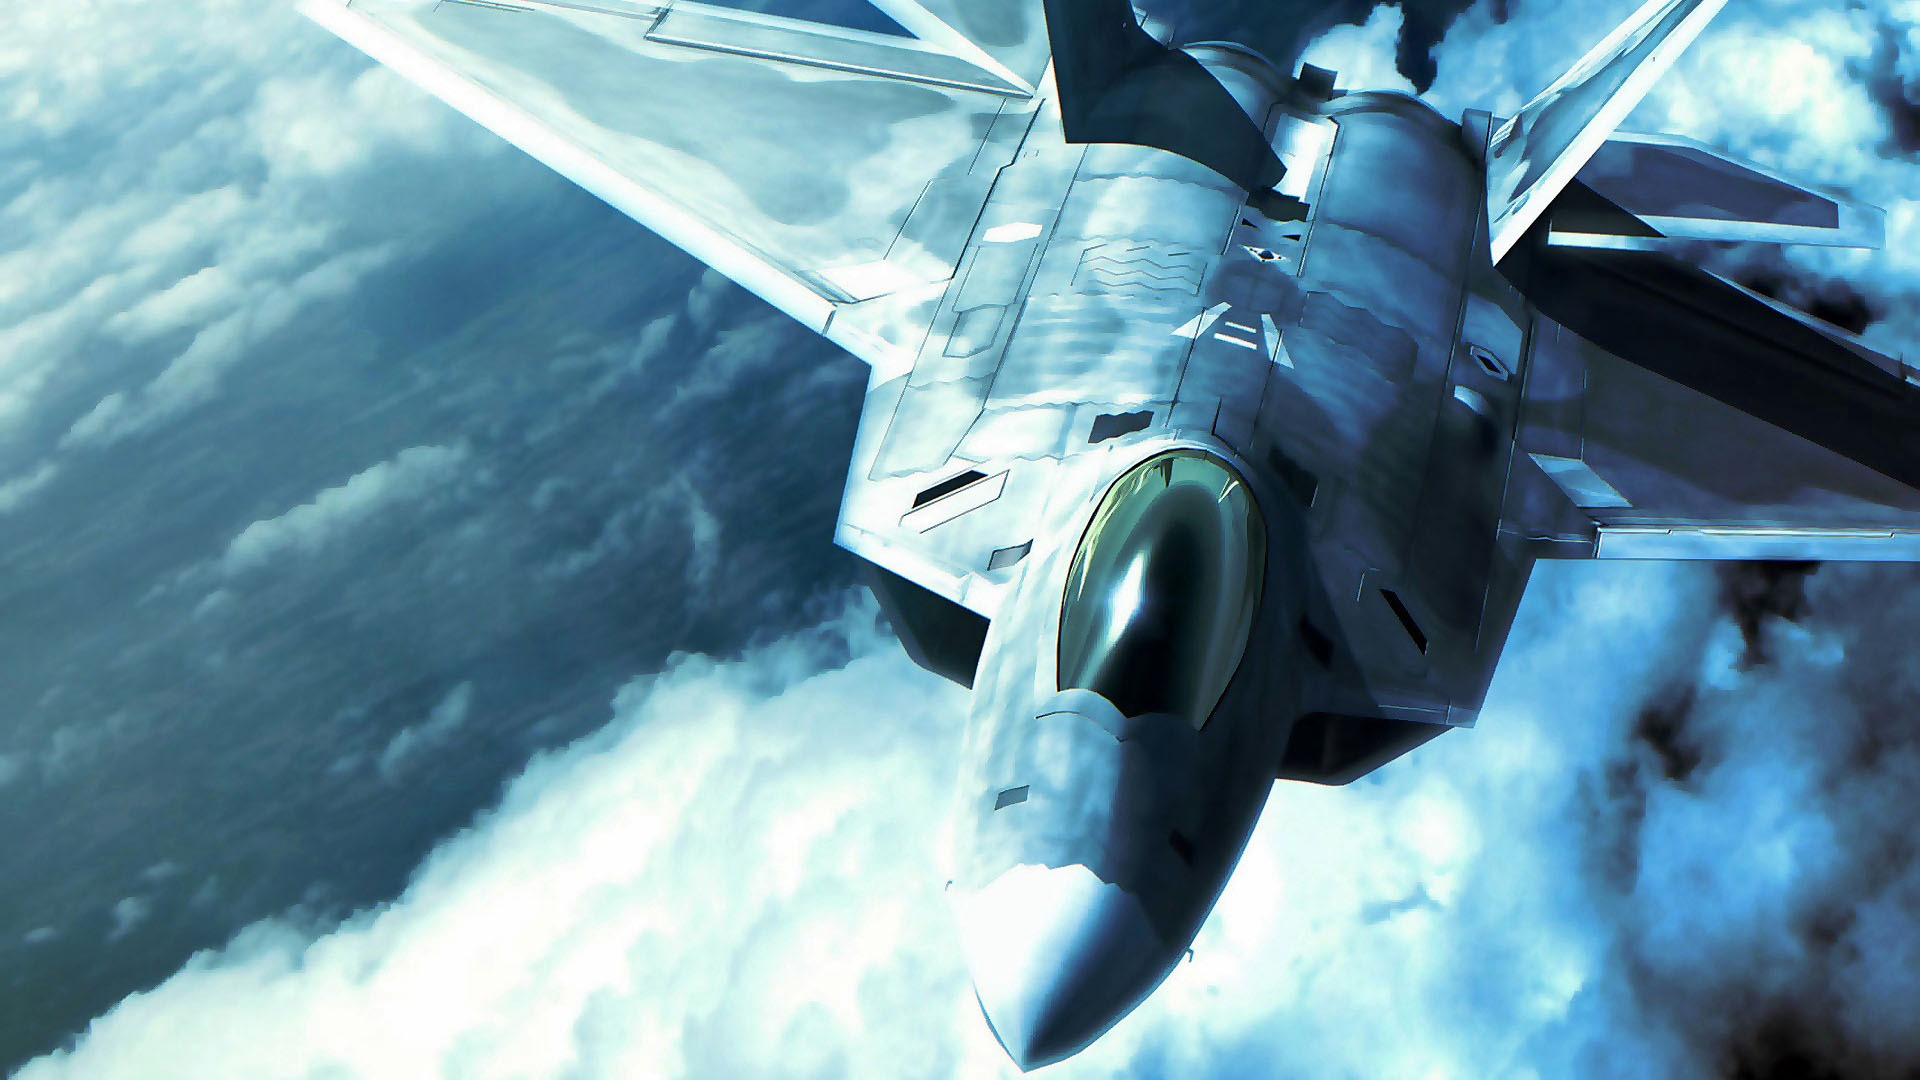 F 22 Raptor   Best Fighter JetBest Fighter Jet 1920x1080